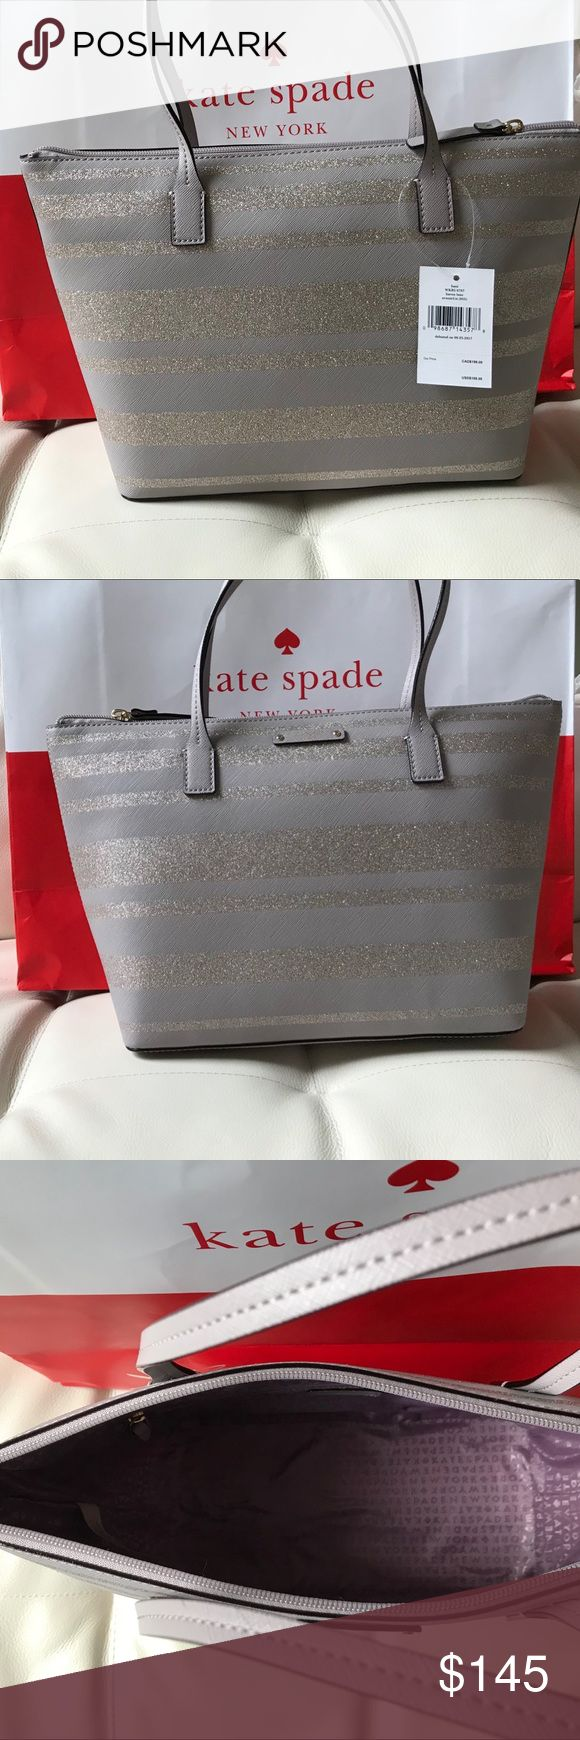 """NWT KATE SPADE NEW YORK NOUVEAU NEUTRAL TOTE BAG Kate Spade handbag  Hani Haven Lane Tote  Nouveau Neutral Glitter Stripes  New with tags. Authenticity Guaranteed!    Kate Spade logo print lining with zippered pocket and two open slip pockets  Zippered top closure with Kate Spade license plate logo on front  Dual handles have a drop of about 6.5""""  Measures approximately 10.5 -14.5"""" (L) x 9"""" (H) x 5.25"""" (W)  📌 NO TRADES PLEASE kate spade Bags Totes"""